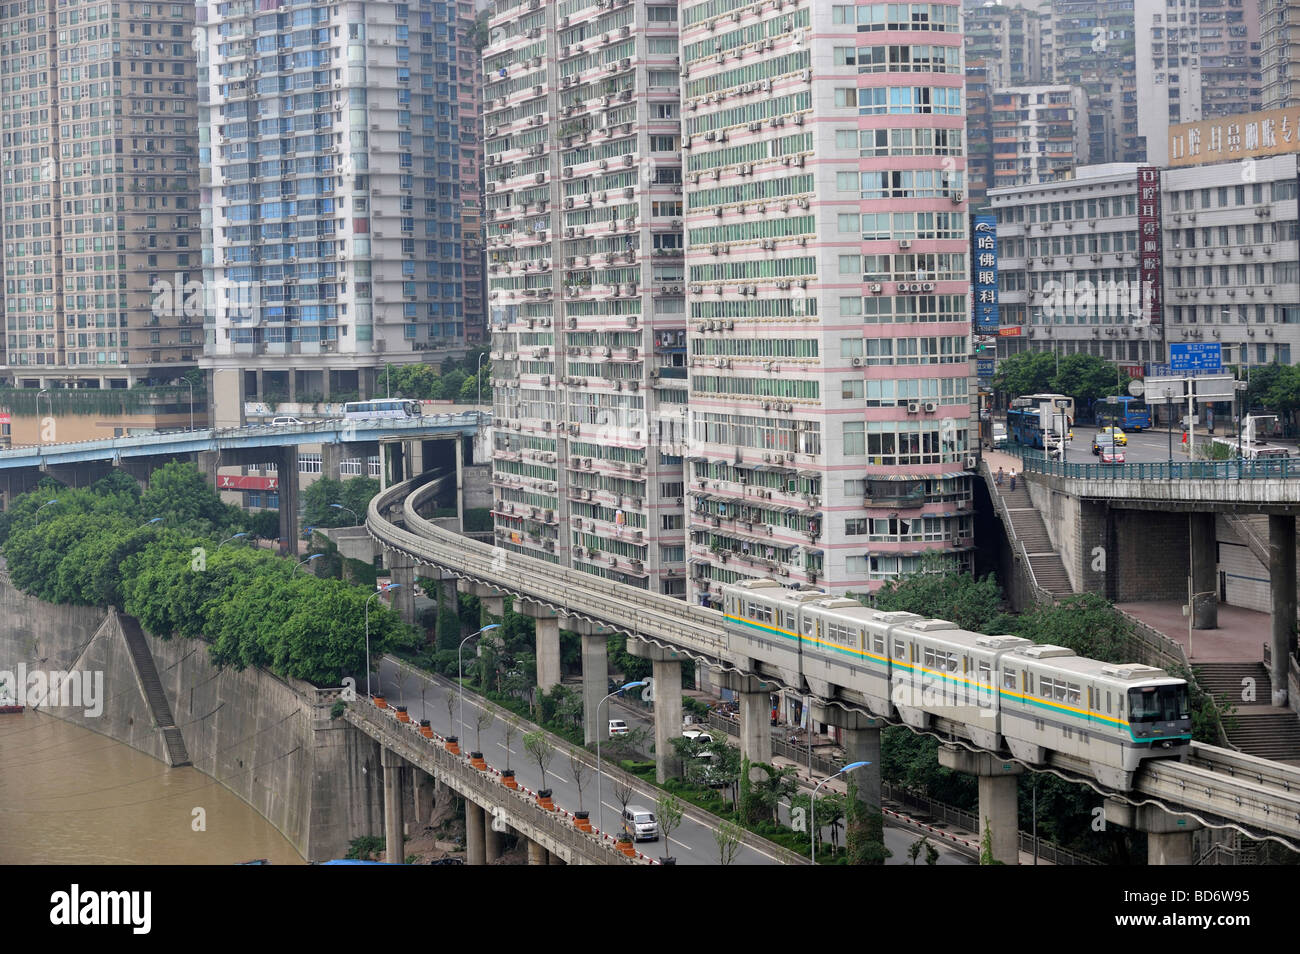 Chongqing Metro Train Across High Density Apartments 02 Aug 2009 Stock Photo Royalty Free